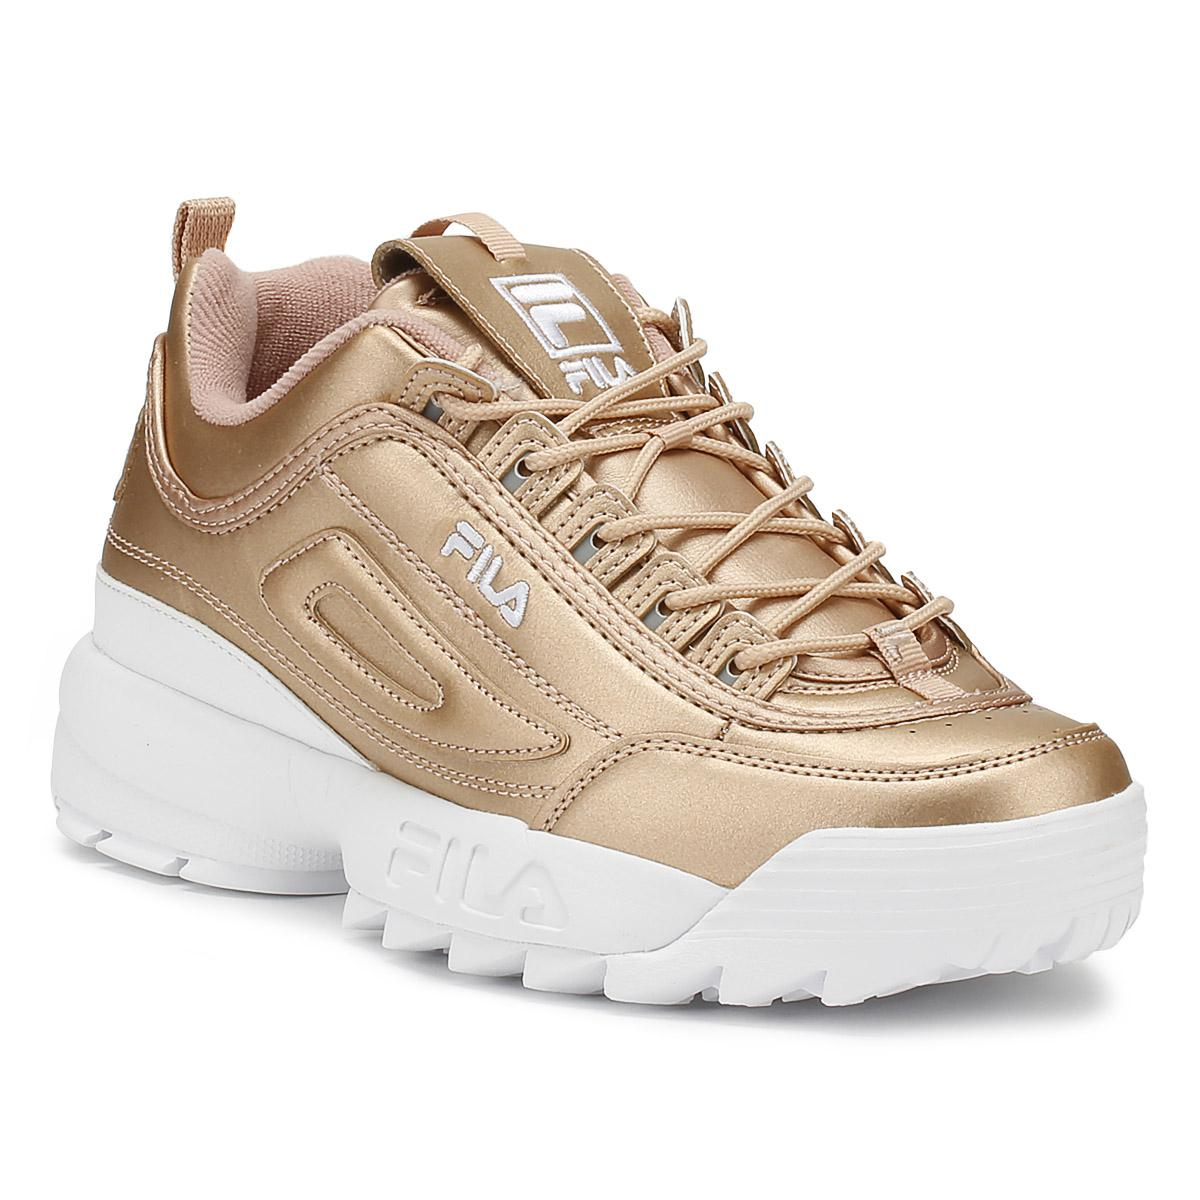 fila rose gold trainers Shop Clothing